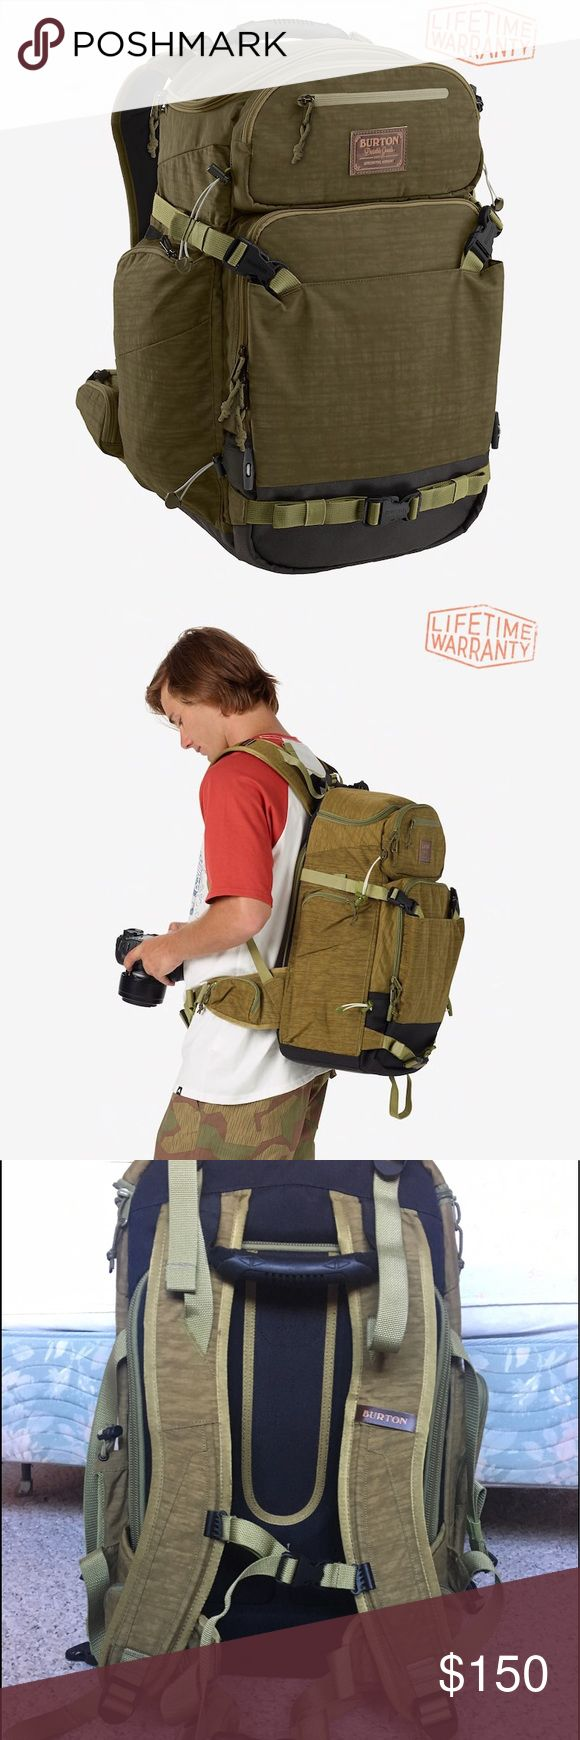 Burton Focus Backpack Never Used! Perfect photography backpack for outdoor  sports. Tons of pockets, laptop compartment, and sturdy. Burton Bags Backpacks